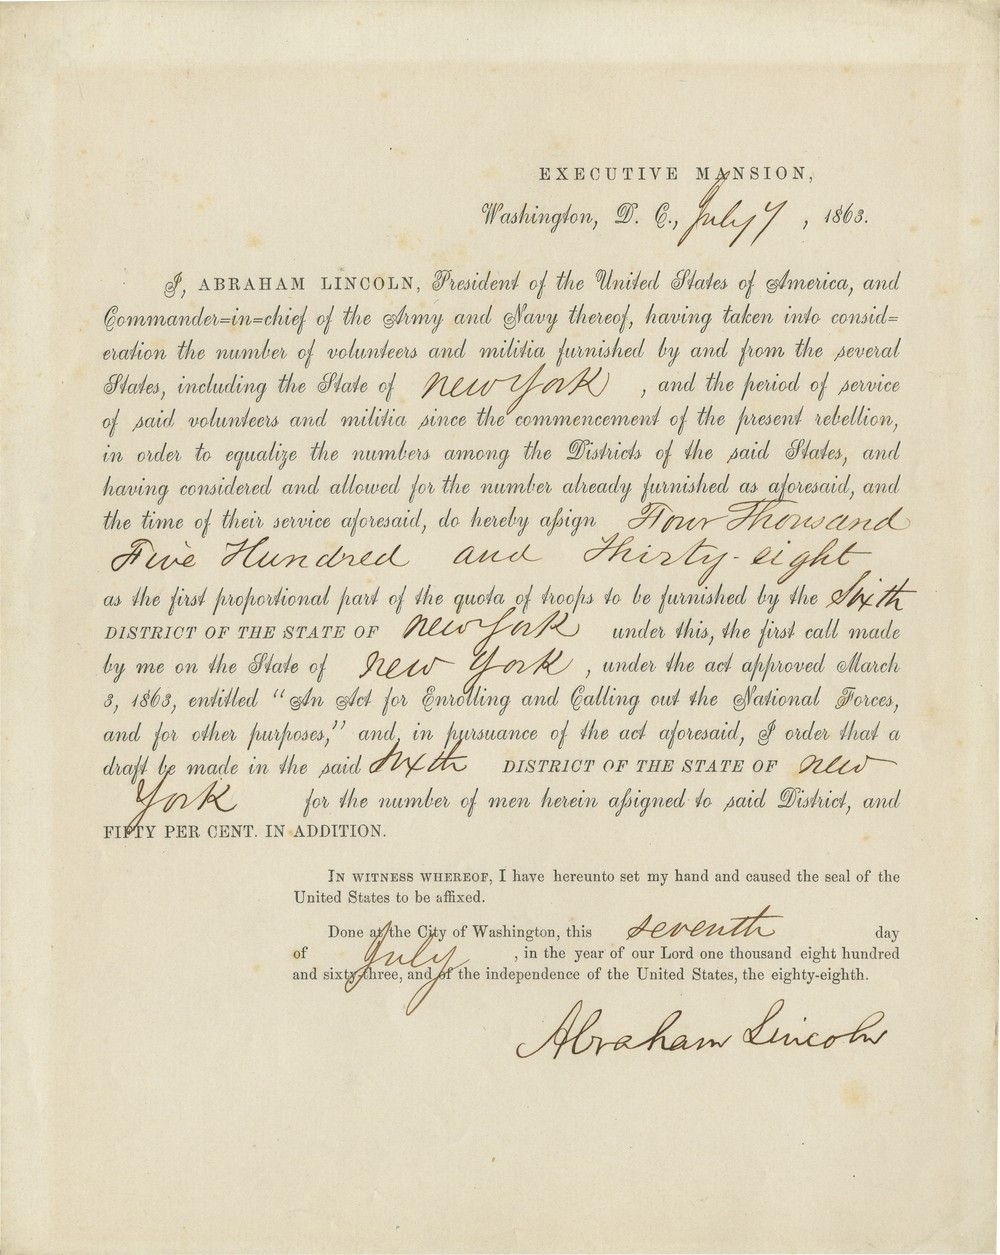 Abraham Lincoln's Order That Sparked the New York City Draft Riots of 1863